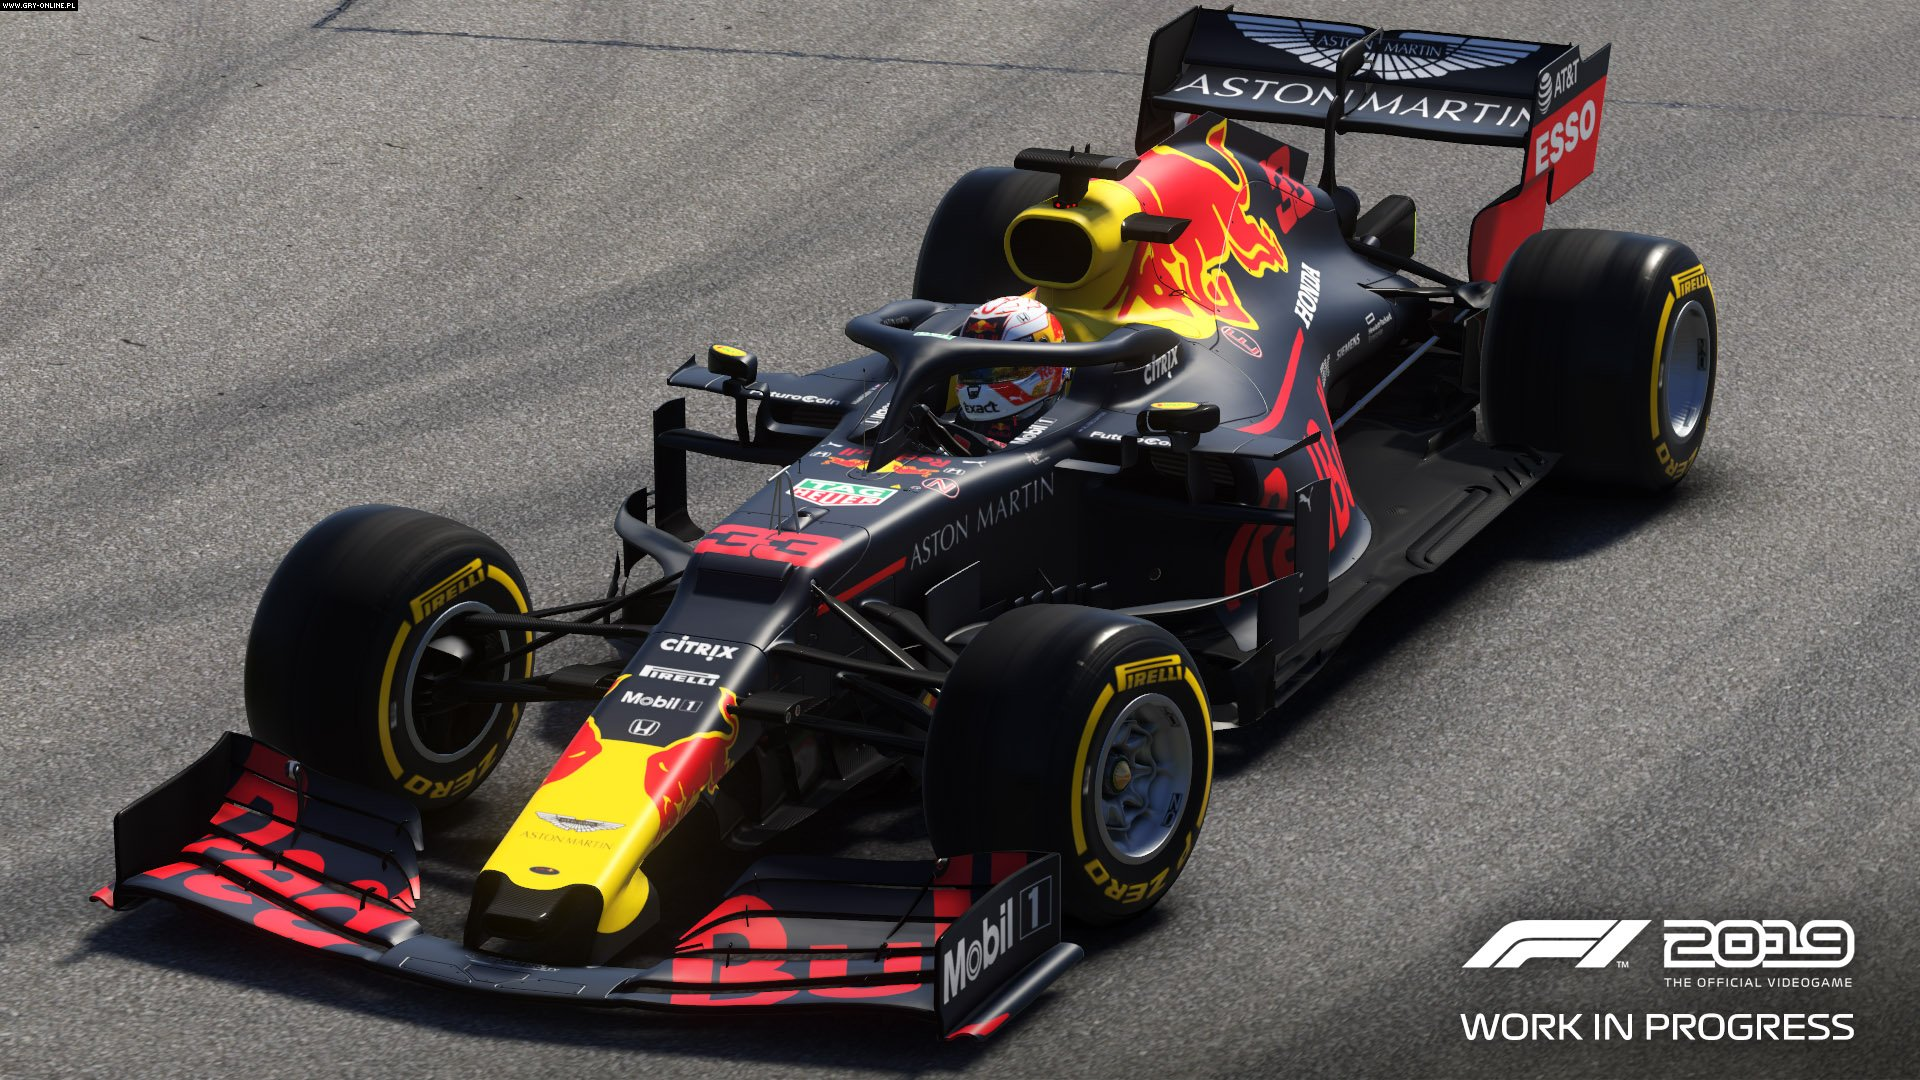 F1 2019 PC, PS4, XONE Games Image 4/62, Codemasters Software